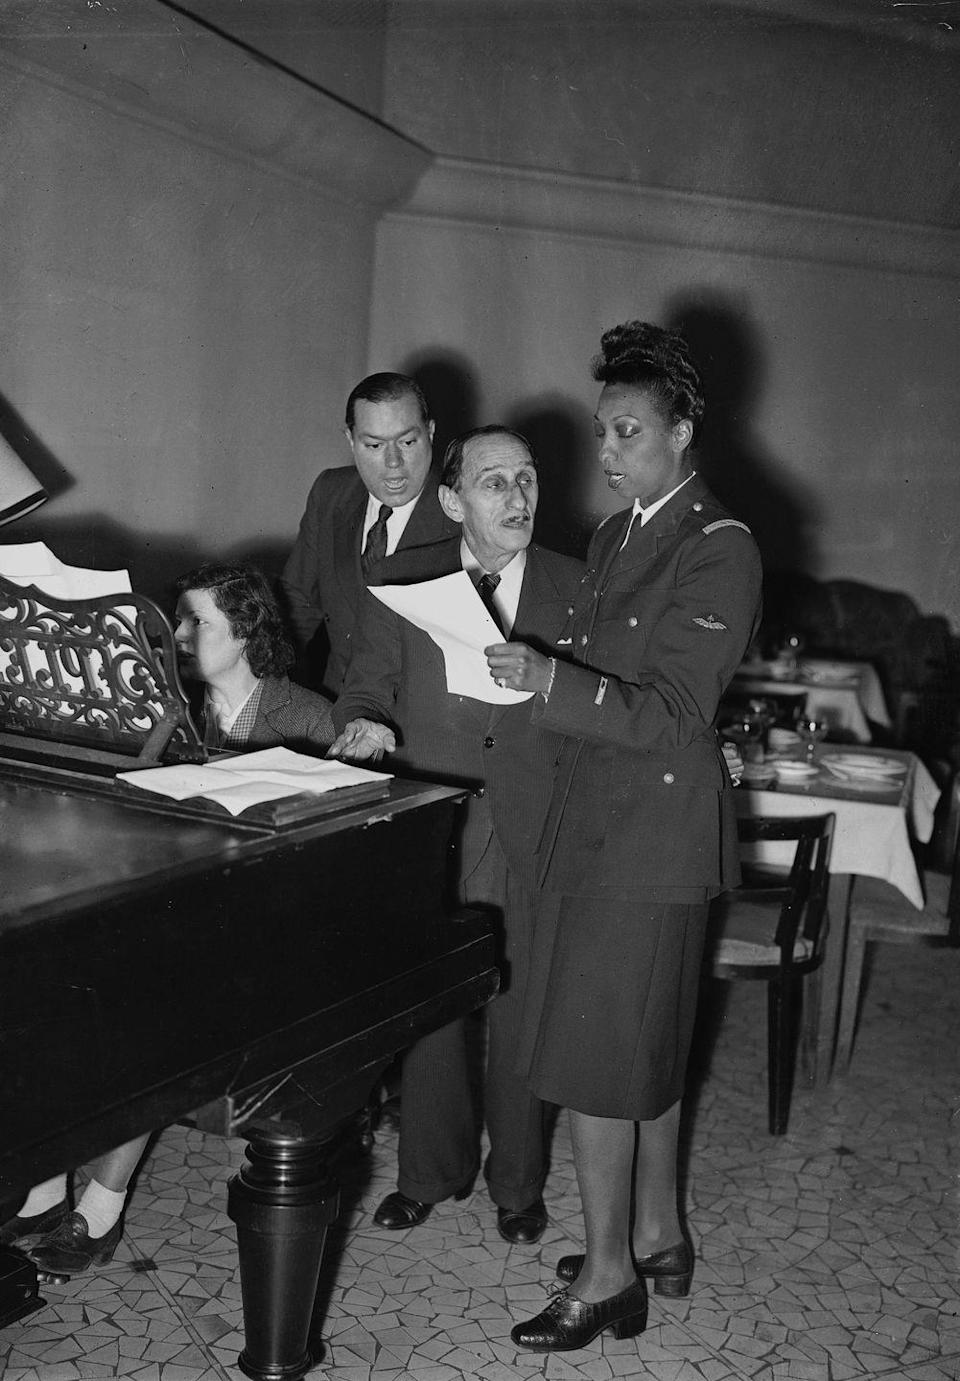 """<p>Baker was <a href=""""https://www.britannica.com/biography/Josephine-Baker"""" rel=""""nofollow noopener"""" target=""""_blank"""" data-ylk=""""slk:awarded the Croix de Guerre"""" class=""""link rapid-noclick-resp"""">awarded the Croix de Guerre</a> and the Legion of Honour for her work as a member of the French Résistance after the war. The singer <a href=""""https://www.biography.com/performer/josephine-baker"""" rel=""""nofollow noopener"""" target=""""_blank"""" data-ylk=""""slk:transported secret messages for the Résistance in her sheet music"""" class=""""link rapid-noclick-resp"""">transported secret messages for the Résistance in her sheet music</a> and was recognized as a war hero.</p>"""